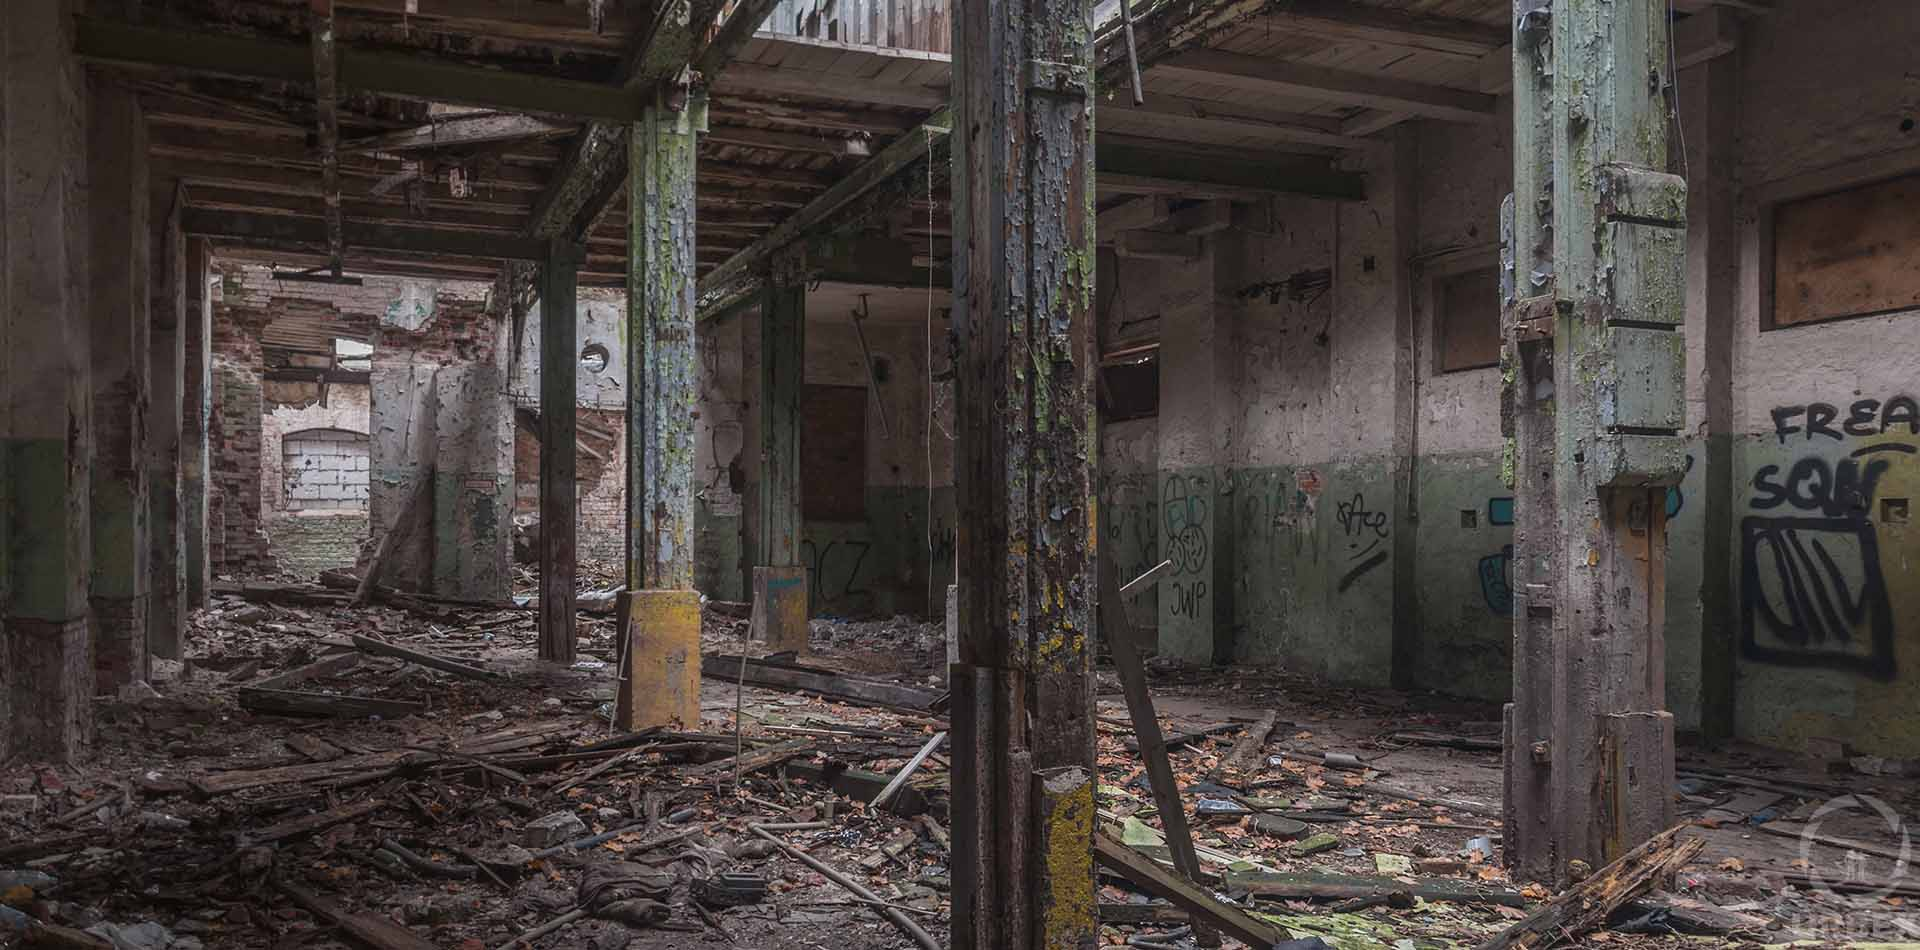 abandoned factory of armored safes in warsaw